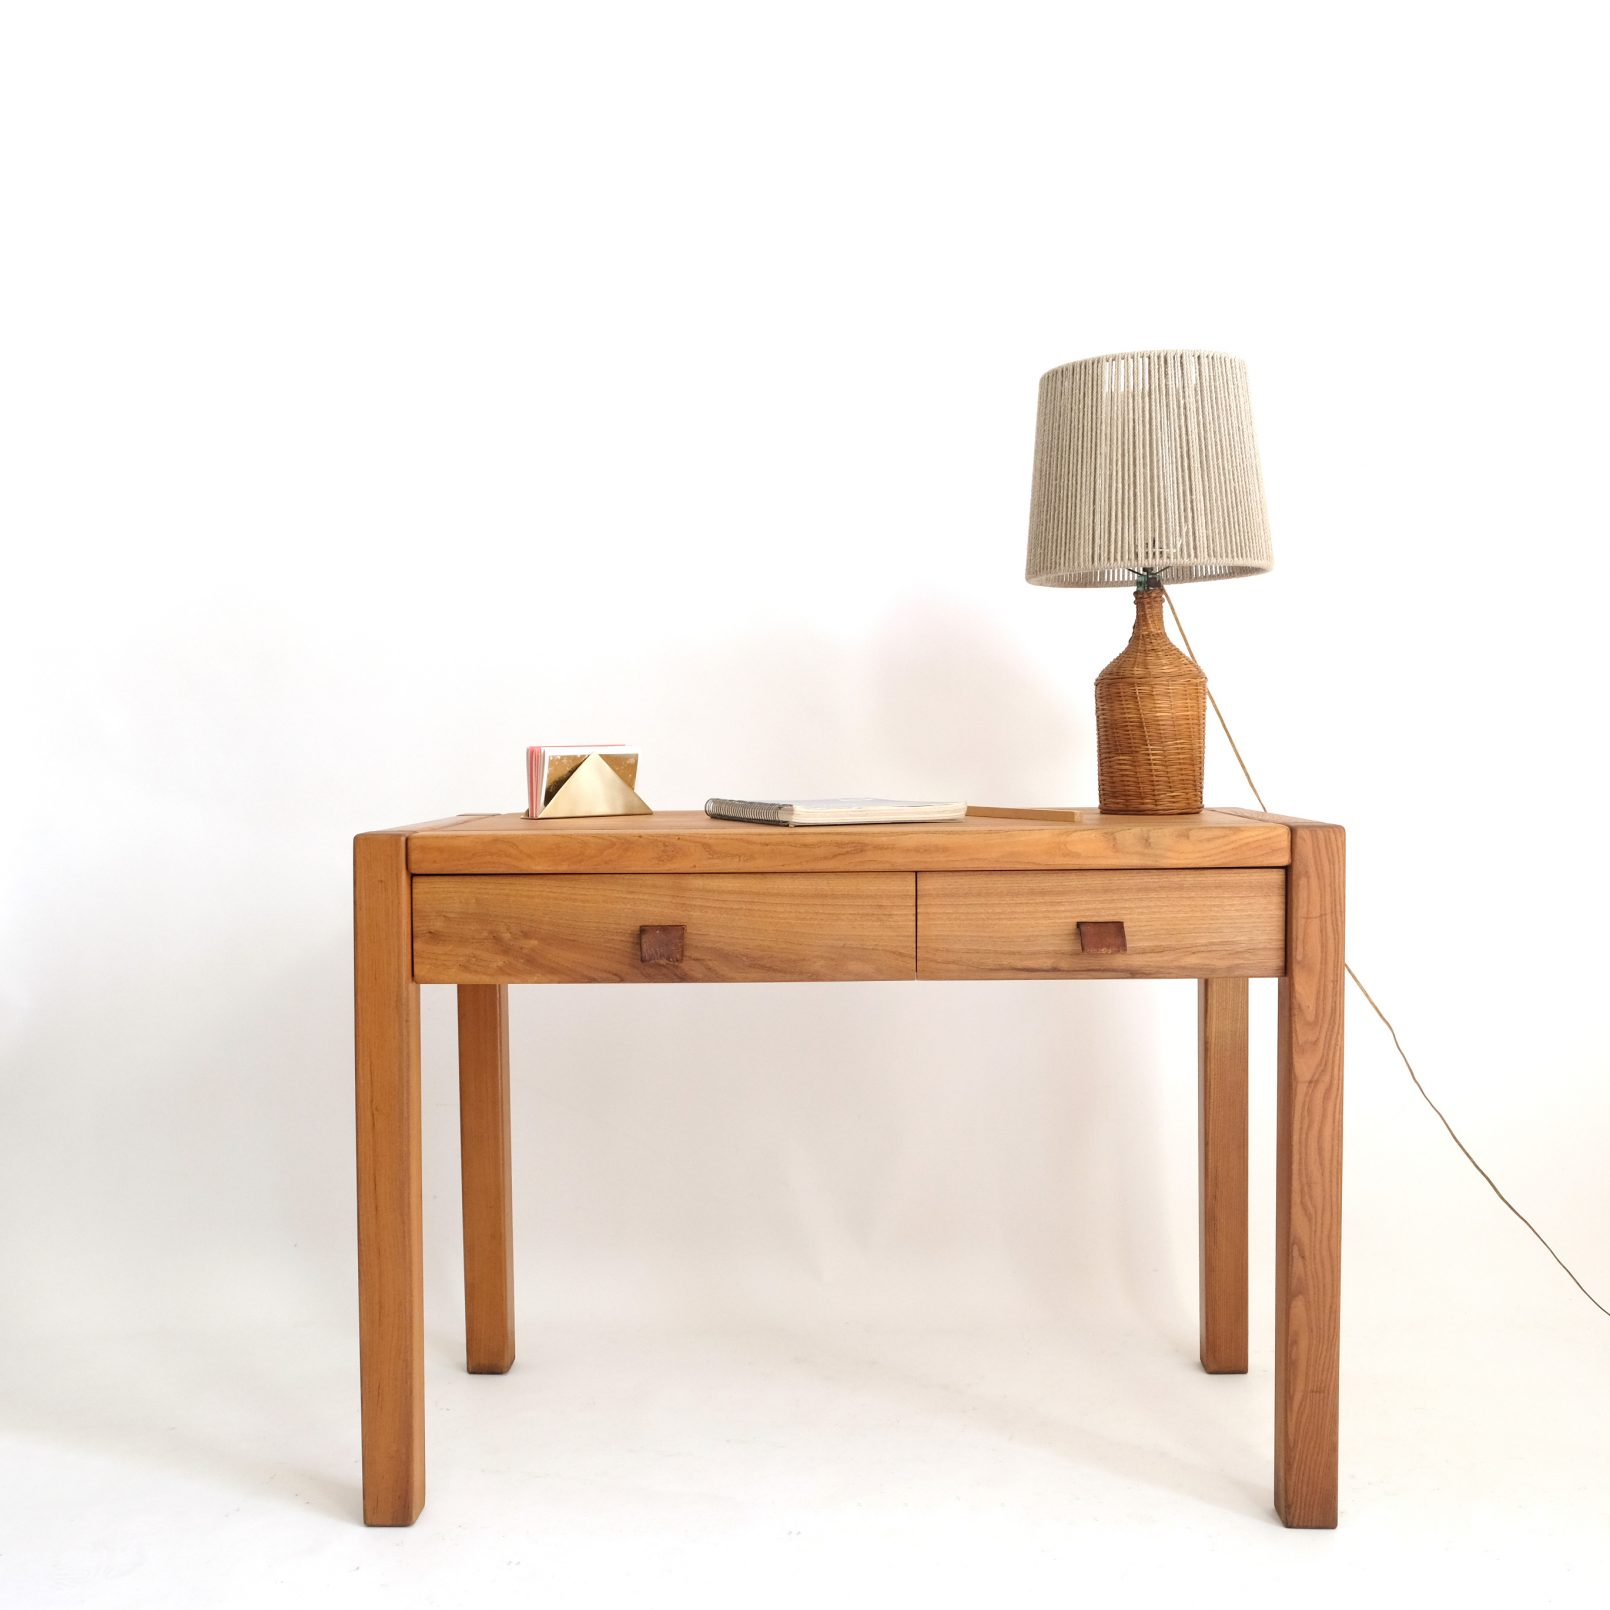 Maison Regain, solid elm desk from the 1960s-1970s.